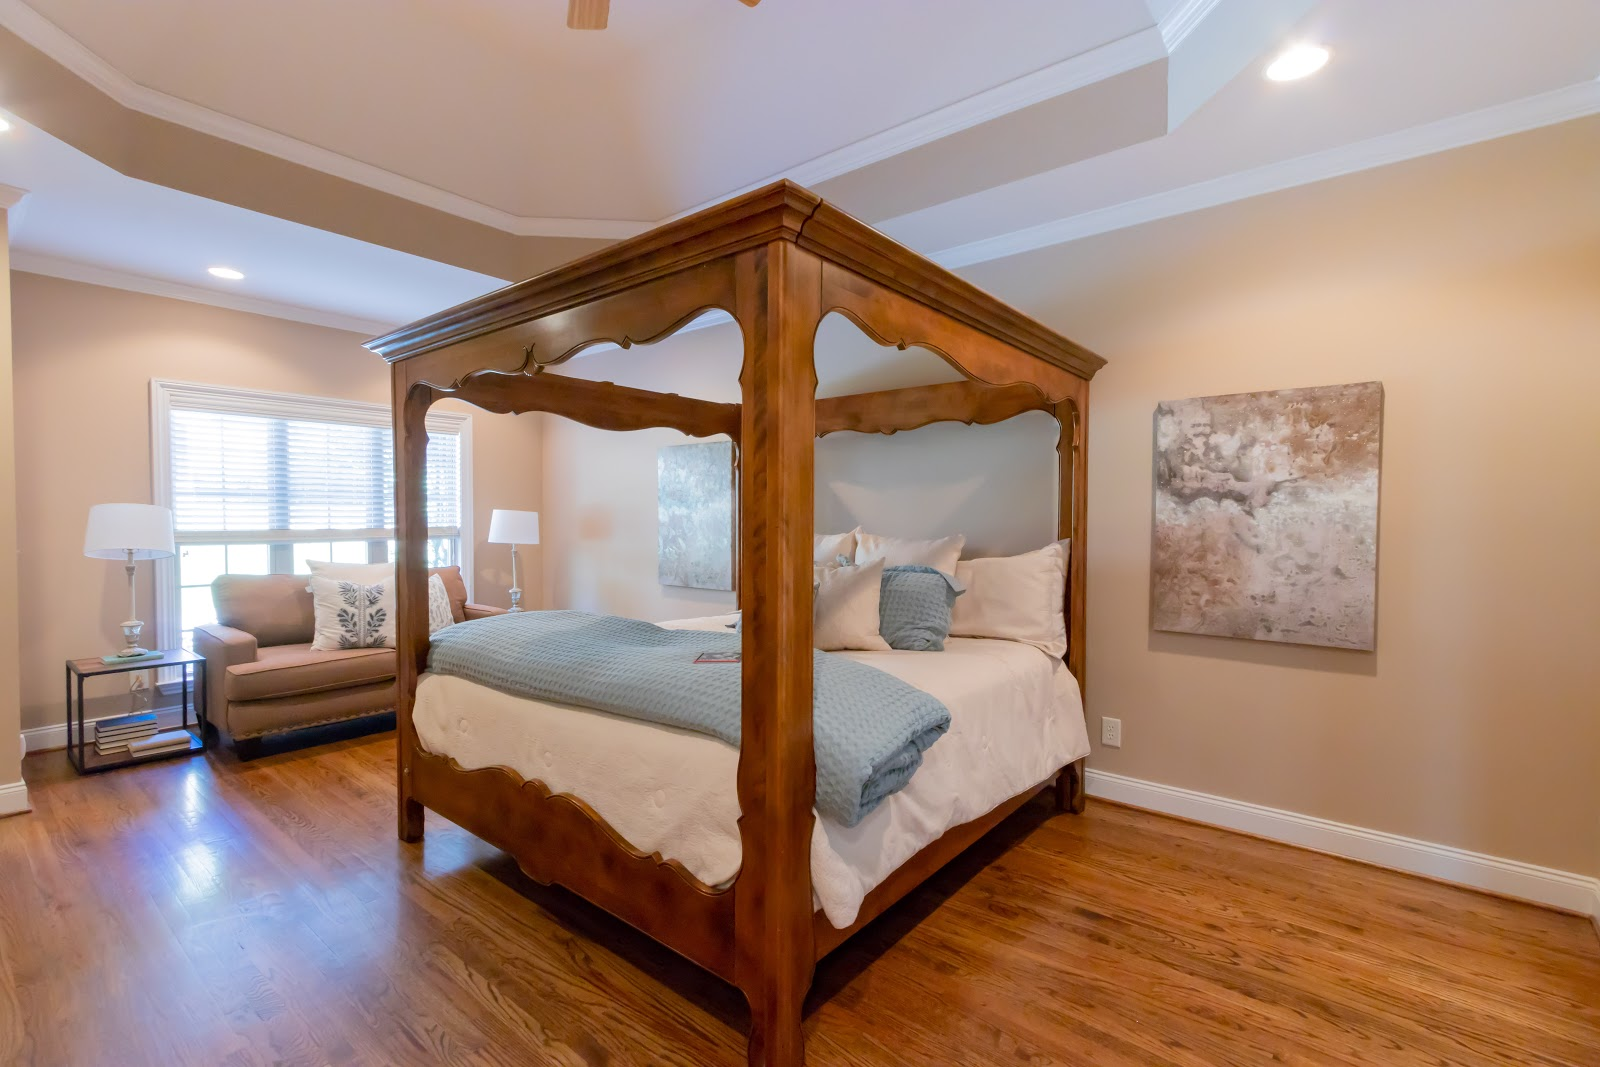 Staging your master bedroom is important for selling your home. Don't fill up the room with furniture, keep it spacious!